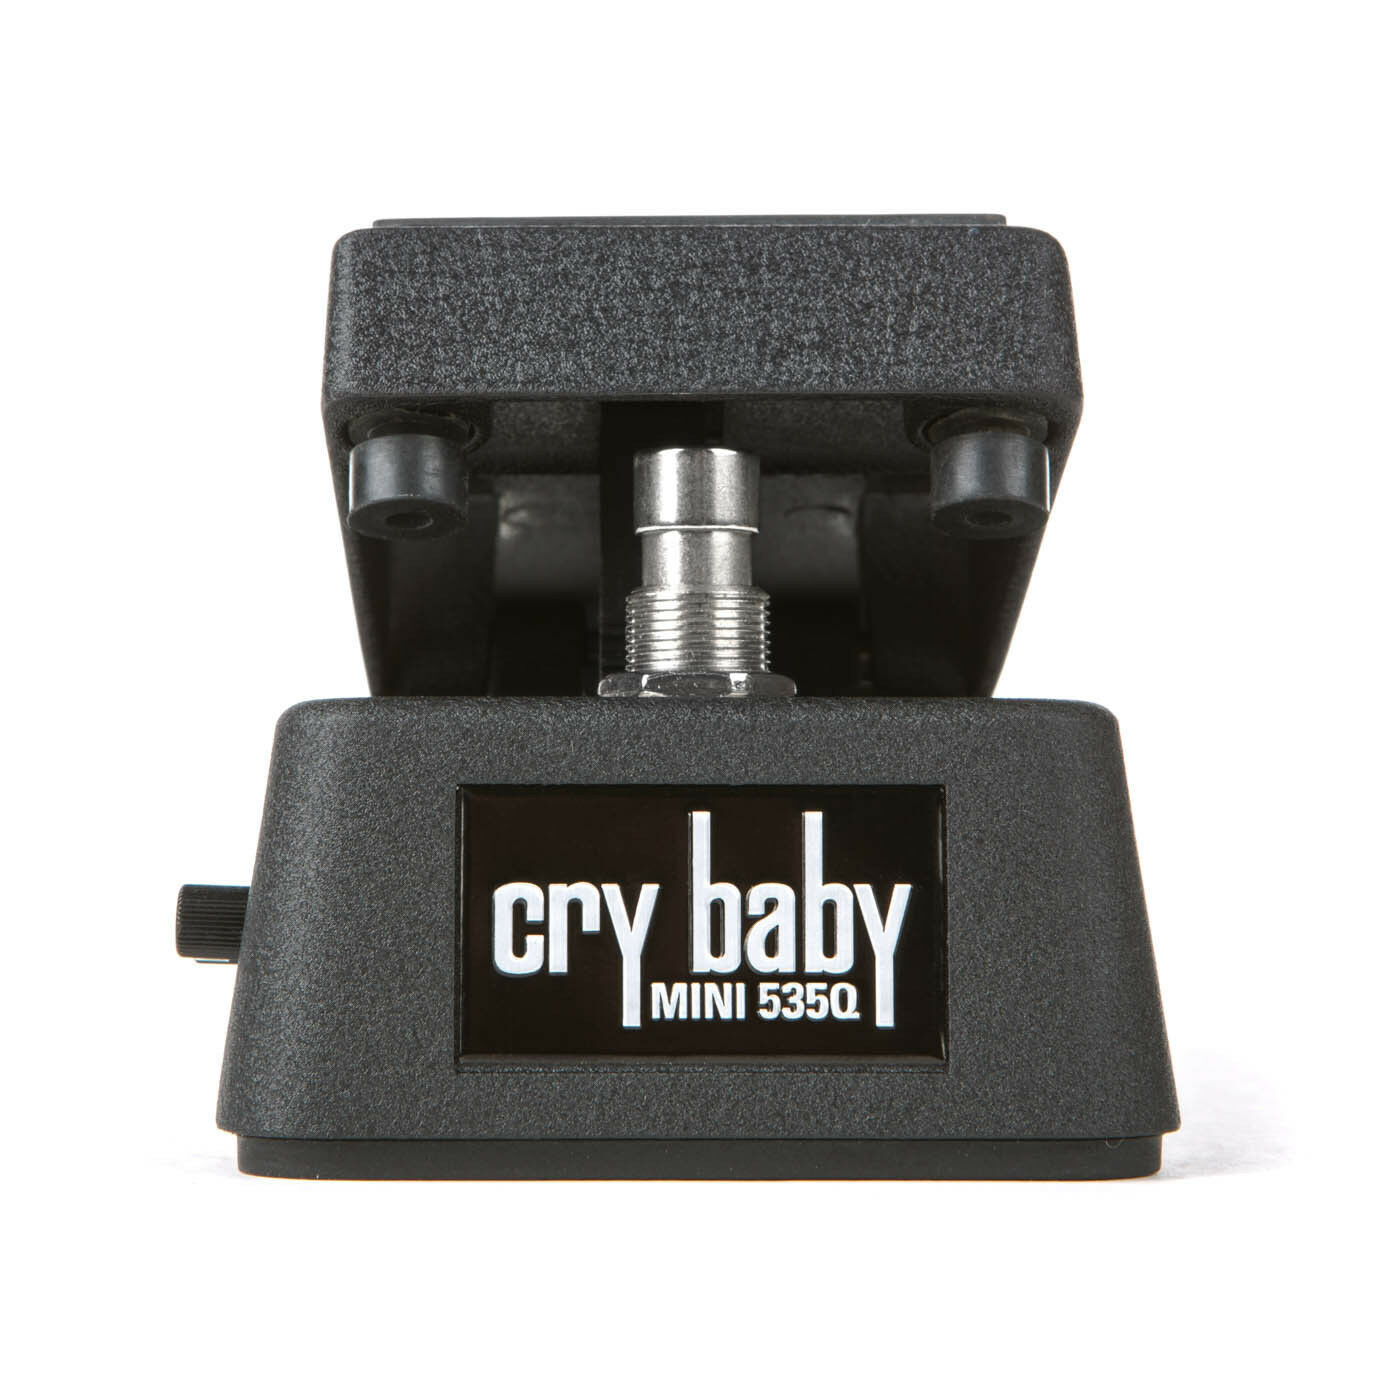 Dunlop Crybaby Mini Wah 535Q BRAND NEW WITH WARRANTY  FREE 2-3 DAY S&H IN U.S.